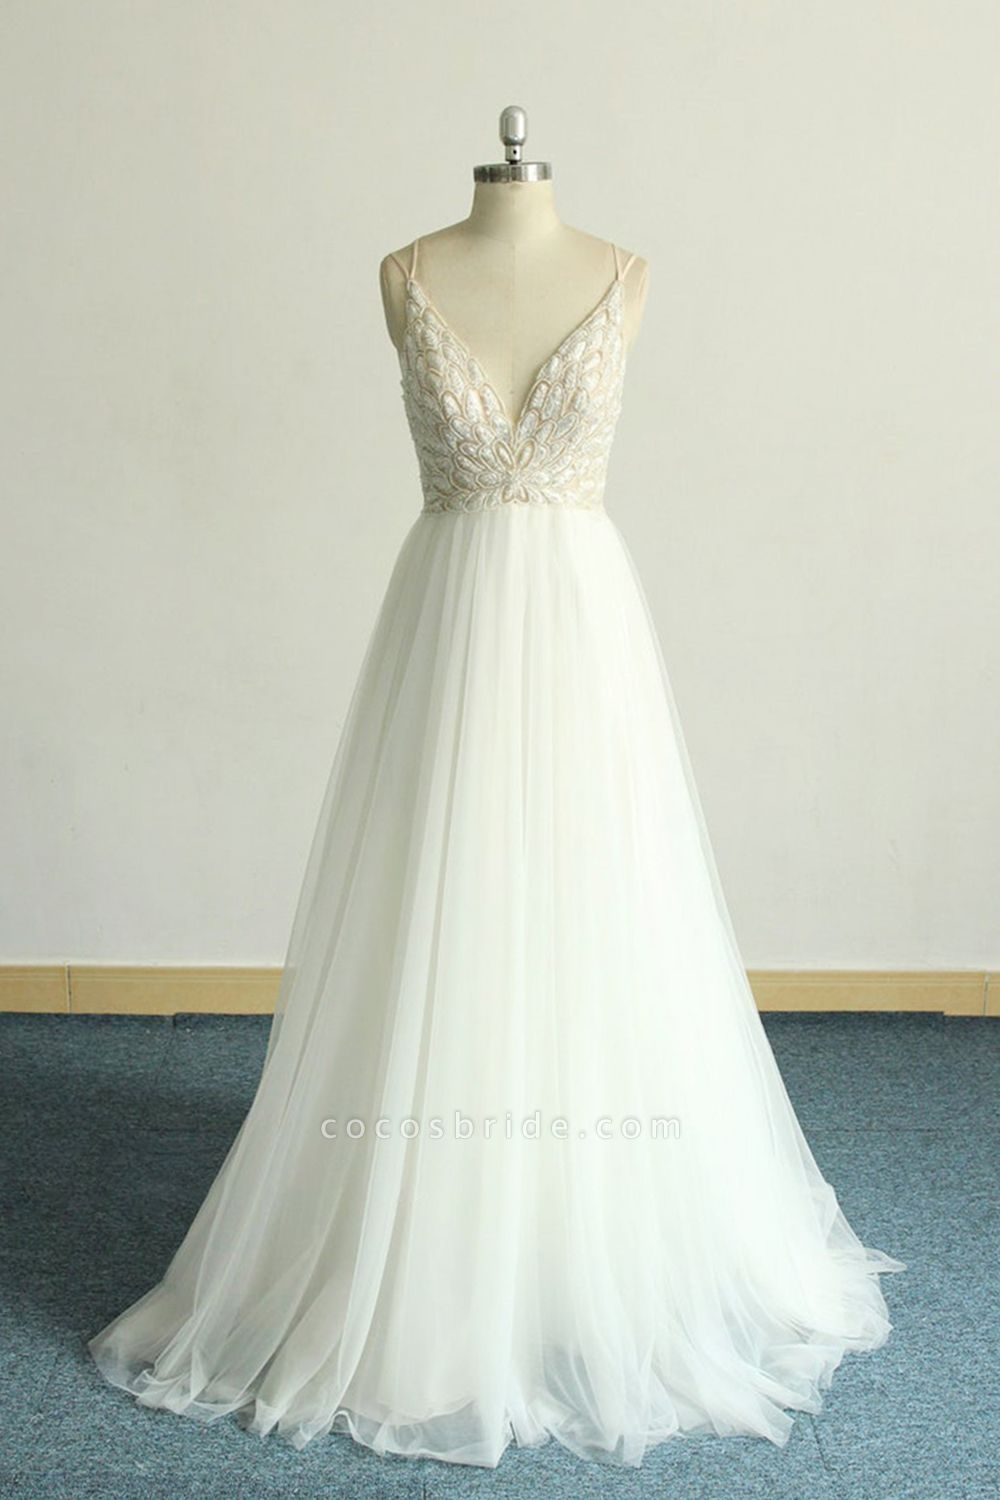 Chic Strap Spaghetti Appliques Tulle Wedding Dress